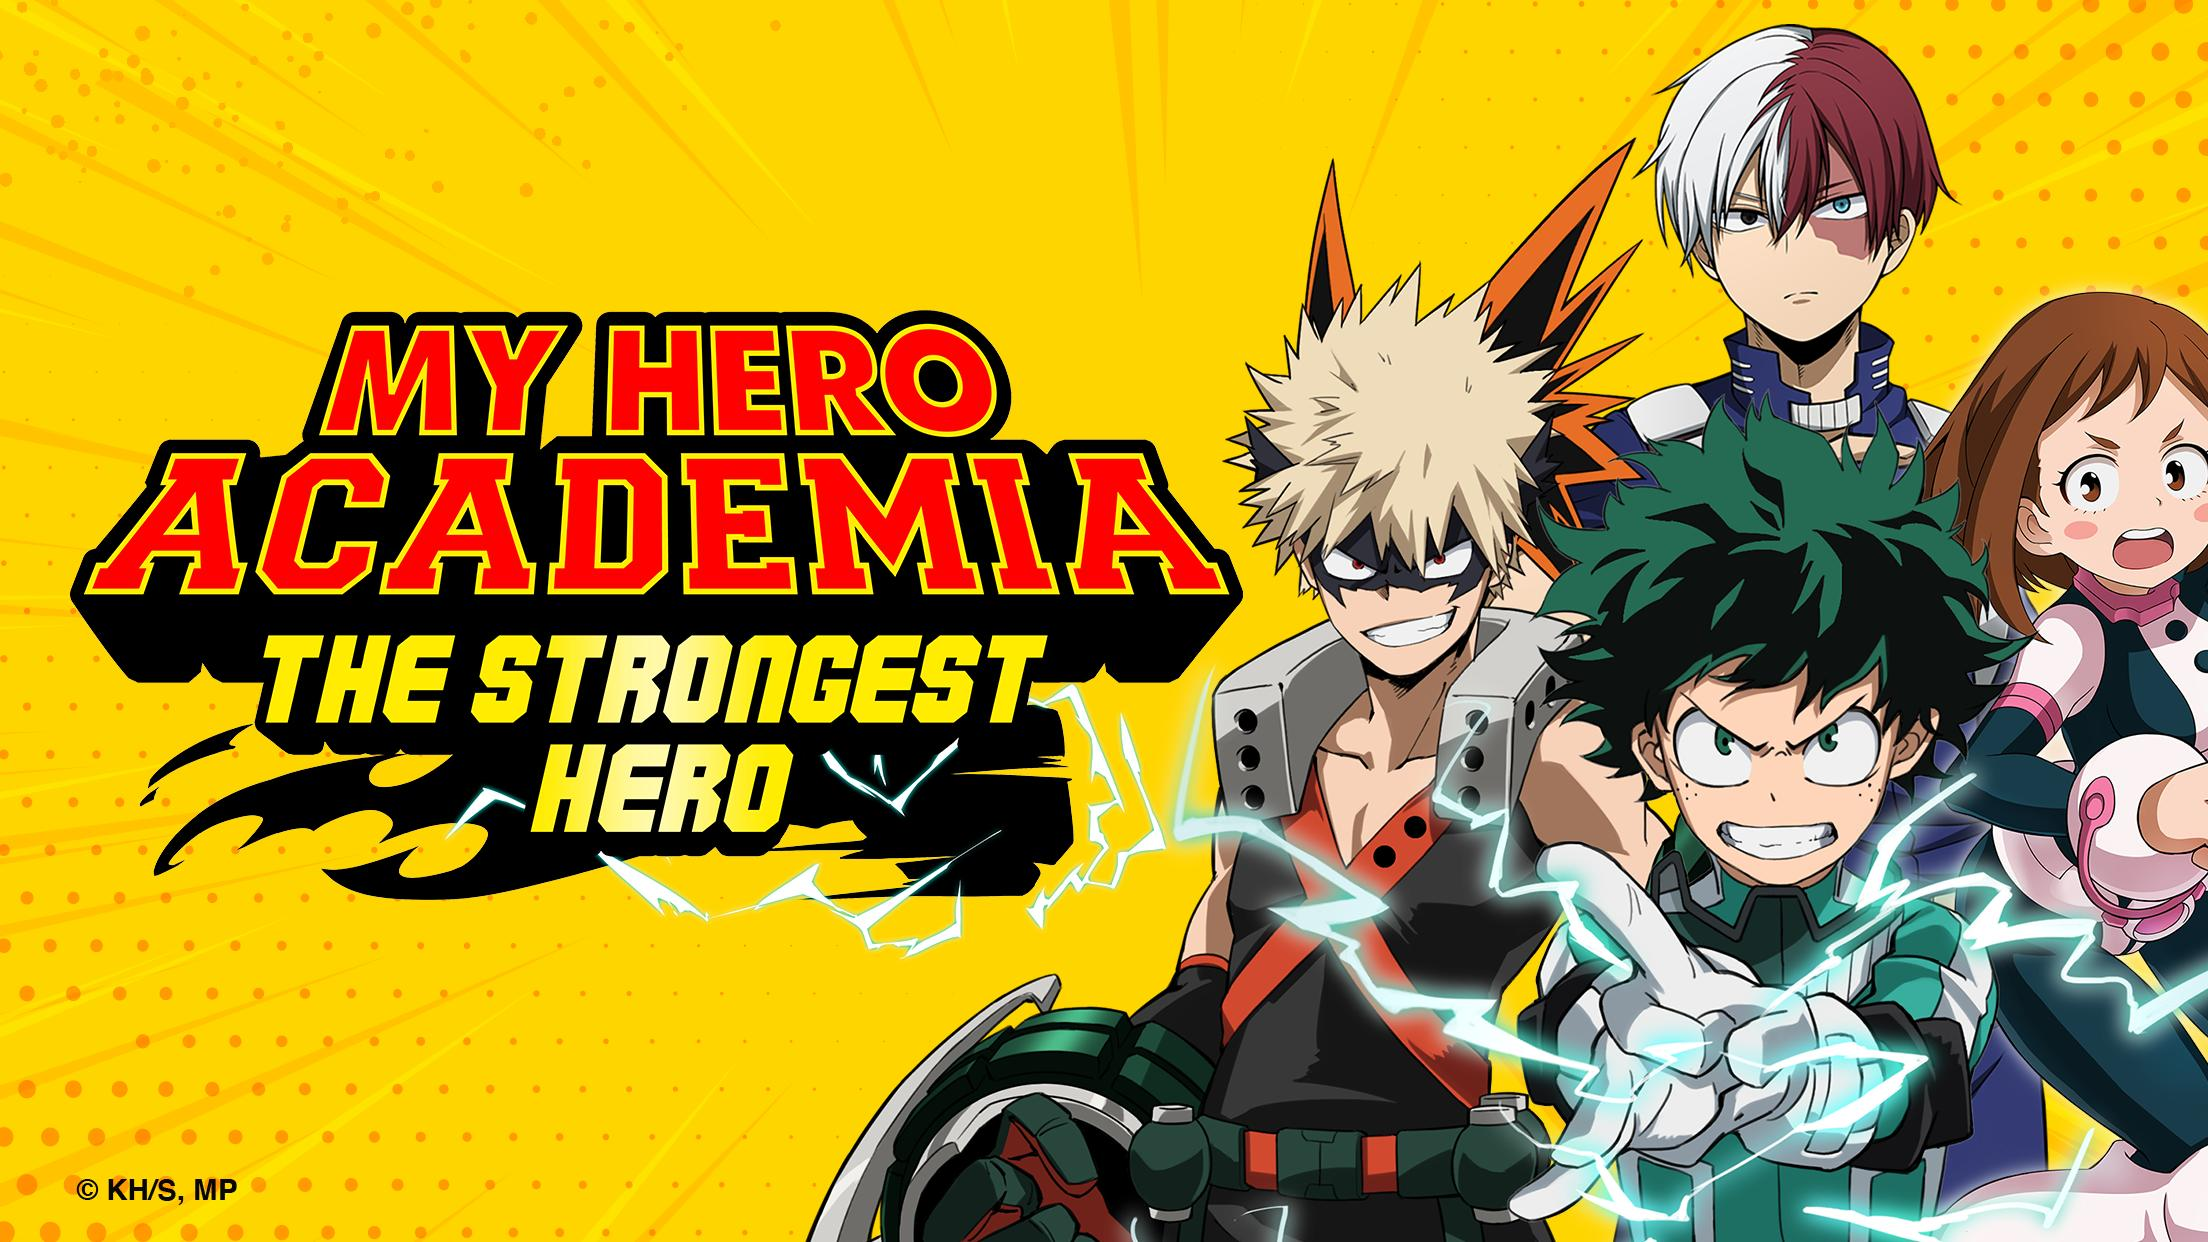 My Hero Academia: The Strongest Hero Anime RPG for Android - APK Download